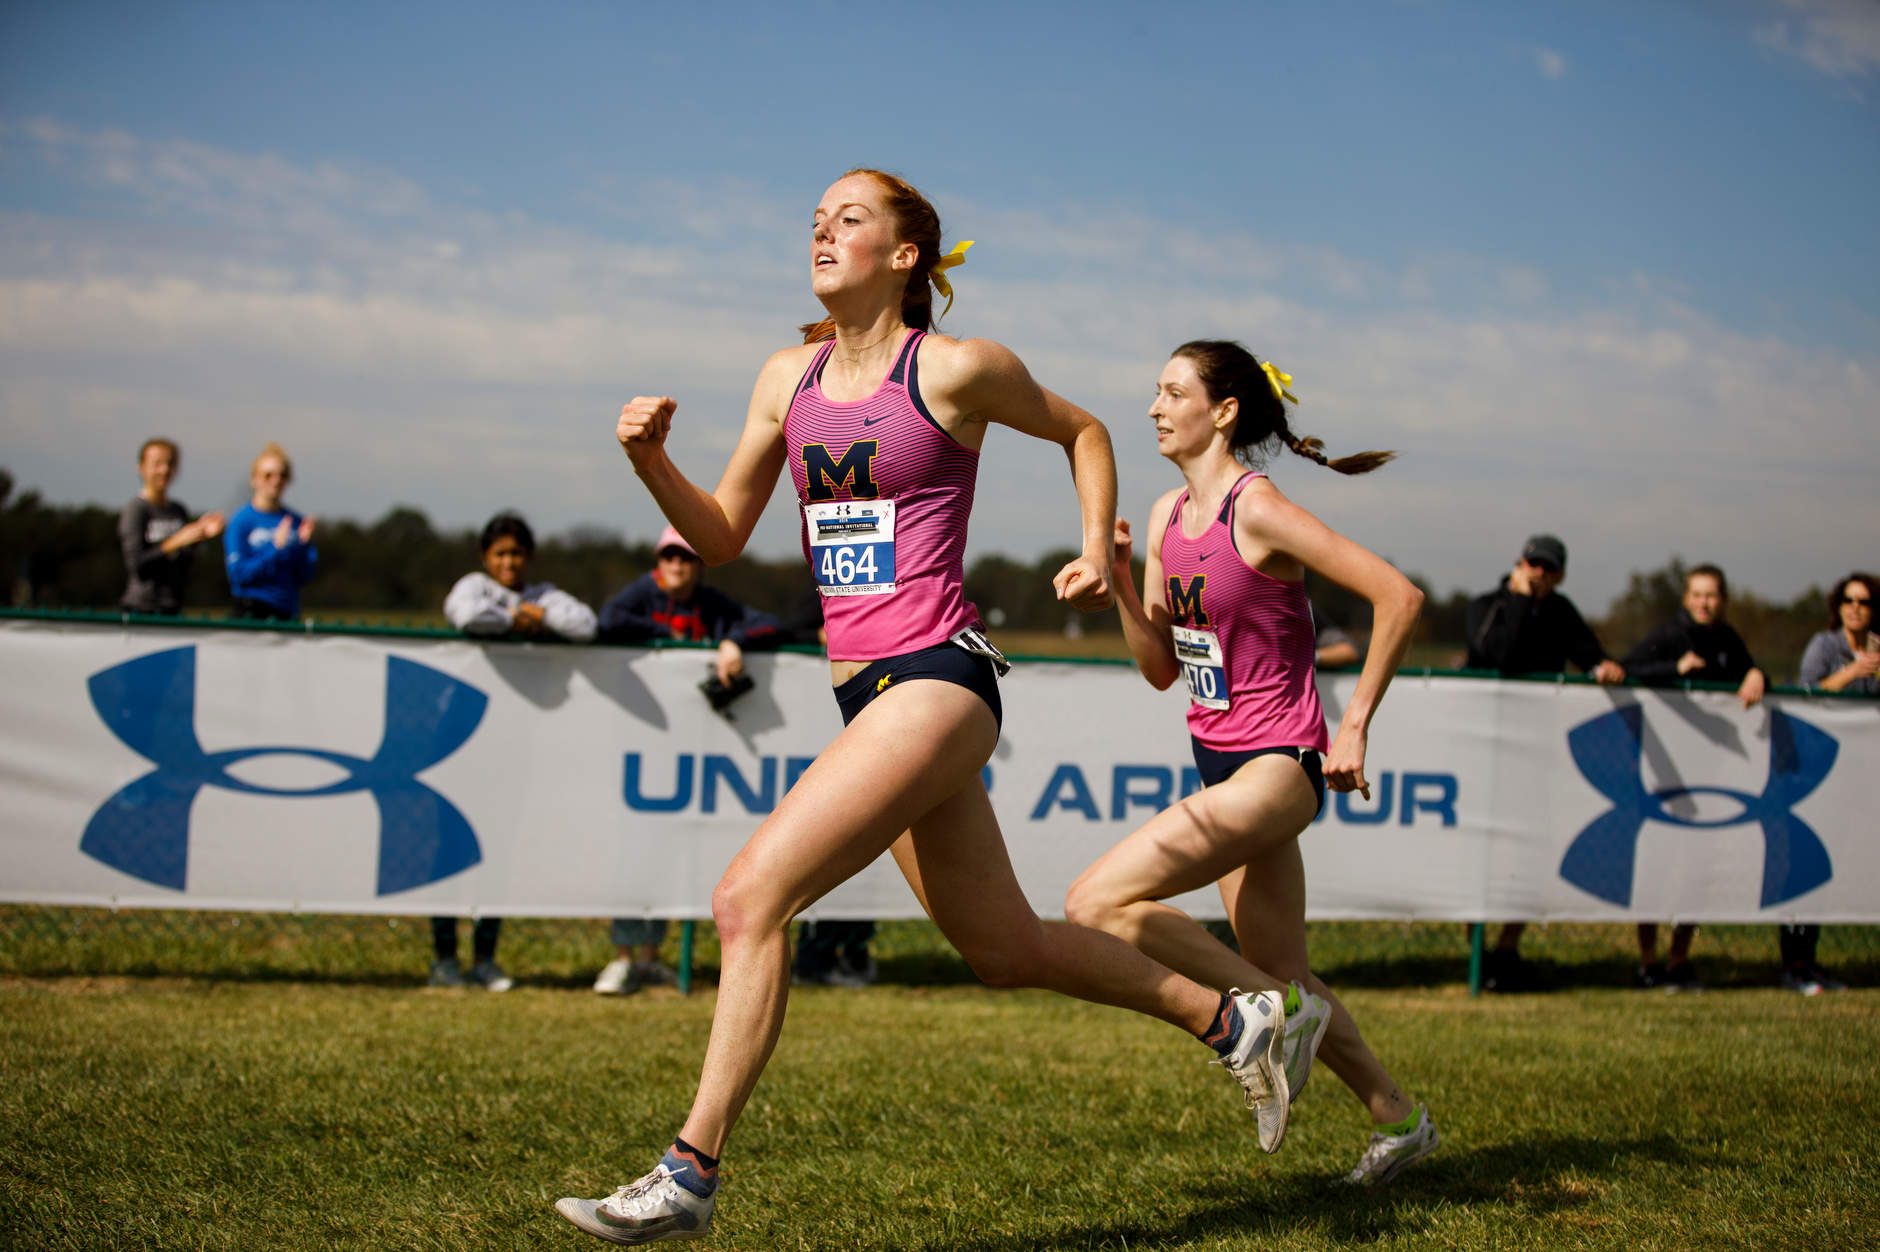 Michigan's Alice Hill (464) and Emma Sloan (470) race to the finish line during the Indiana State Pre-National Cross Country Invitational in Terre Haute, Indiana on Saturday, Oct. 19, 2019. (Photo by James Brosher)